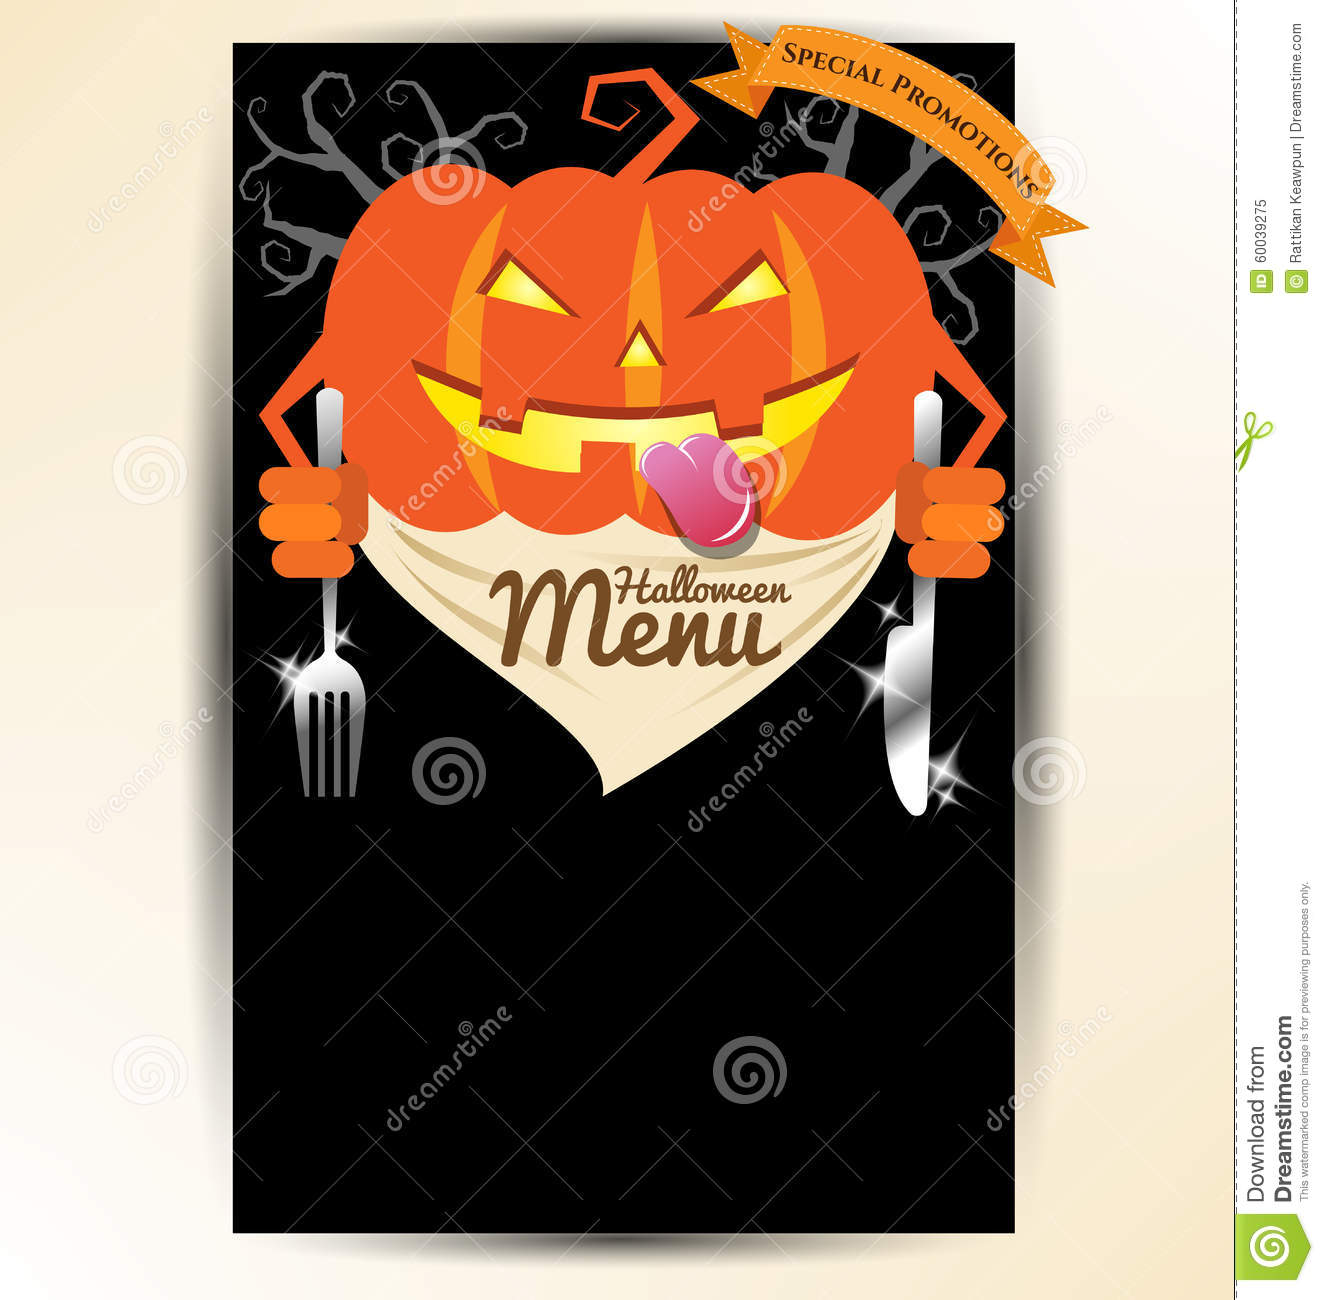 pumpkin holding spoon and knives for halloween party menu stock